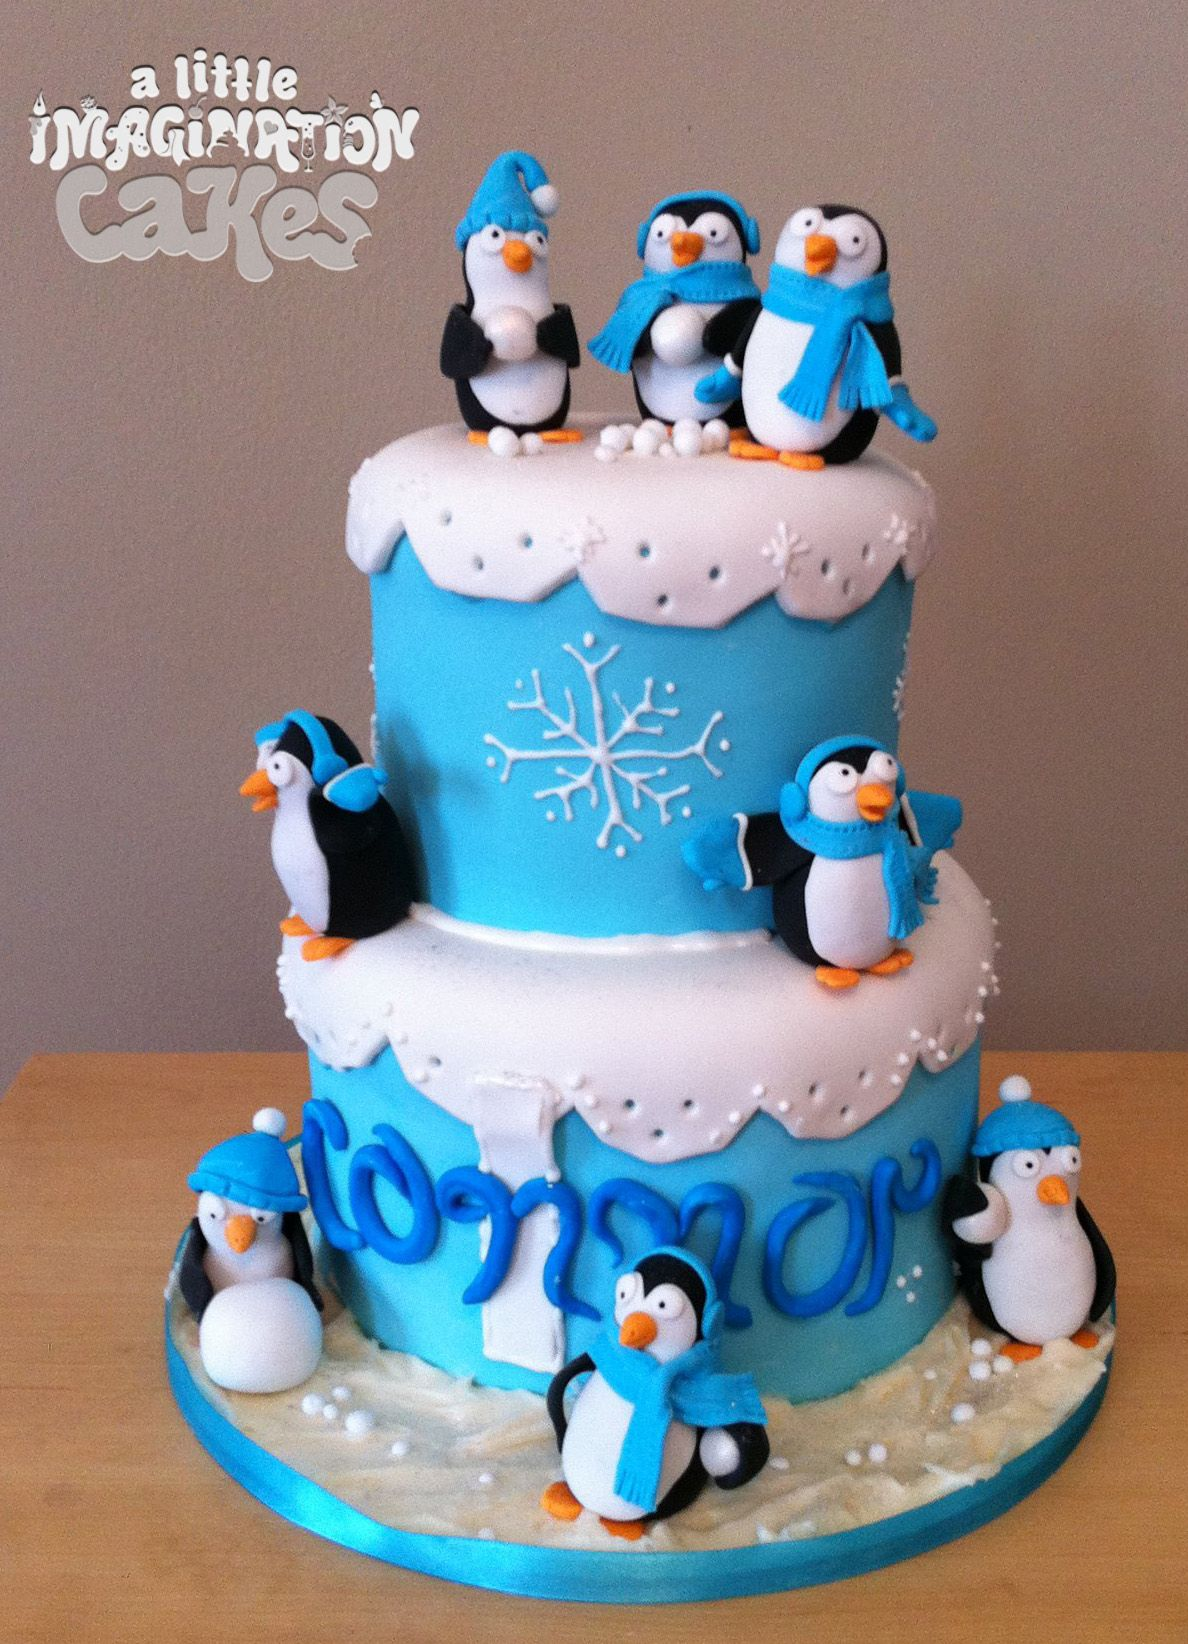 Wondrous Penguin 1St Birthday Cake By A Little Imagination Cakes Cake Funny Birthday Cards Online Aeocydamsfinfo